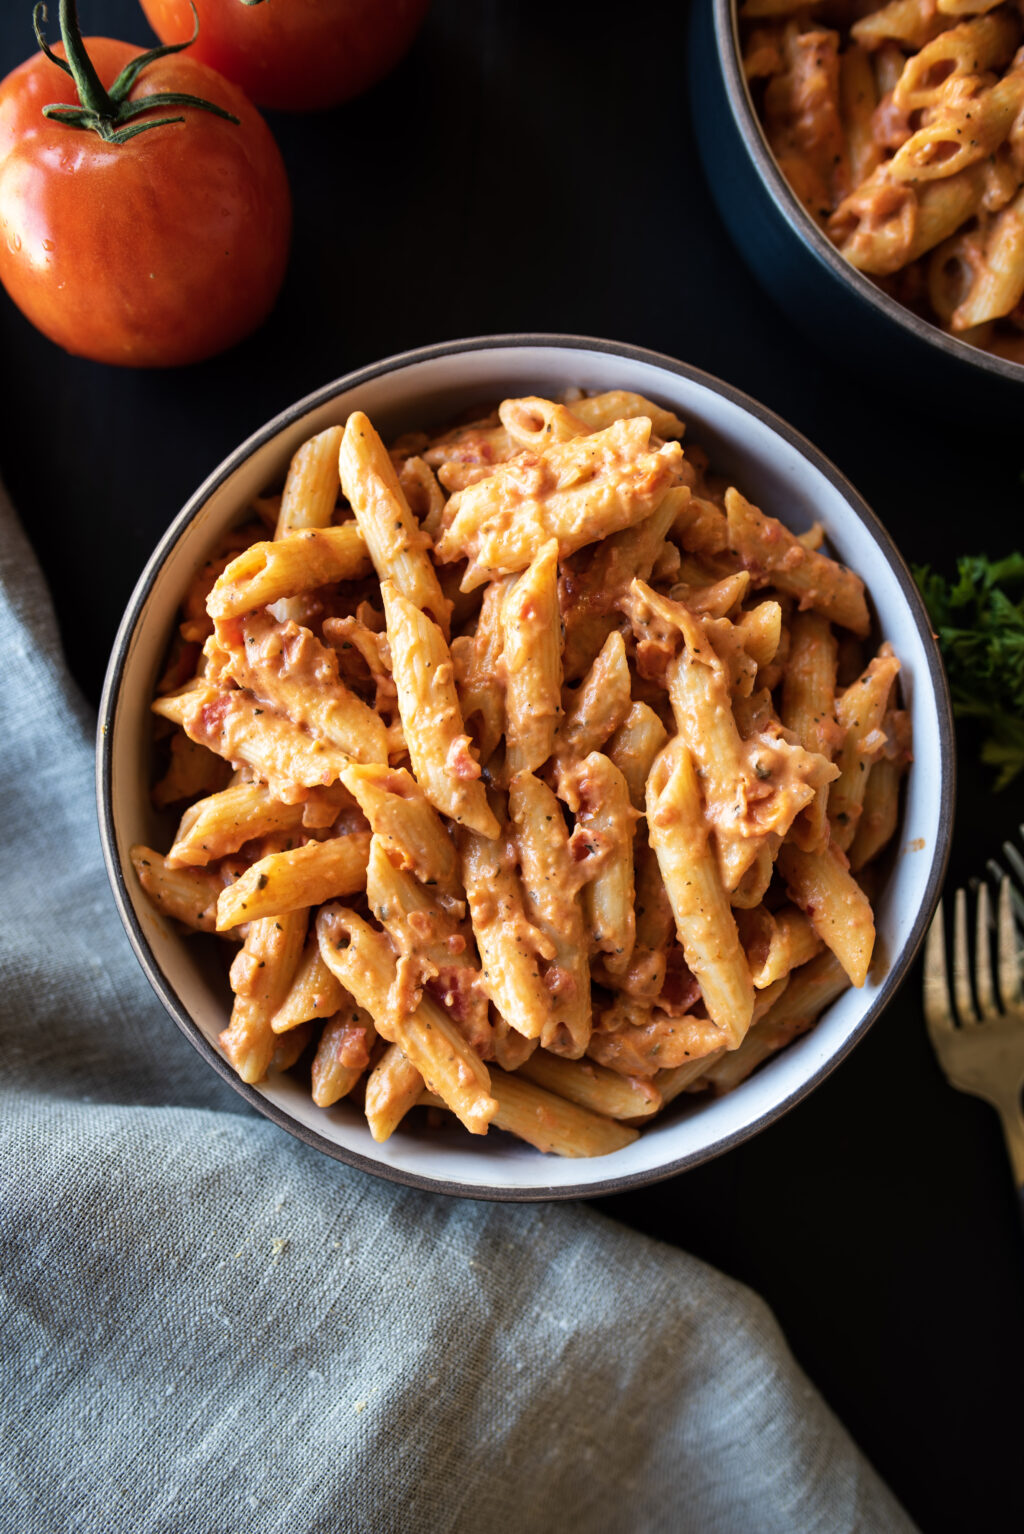 Overhead shot of Penne pasta with vodka sauce